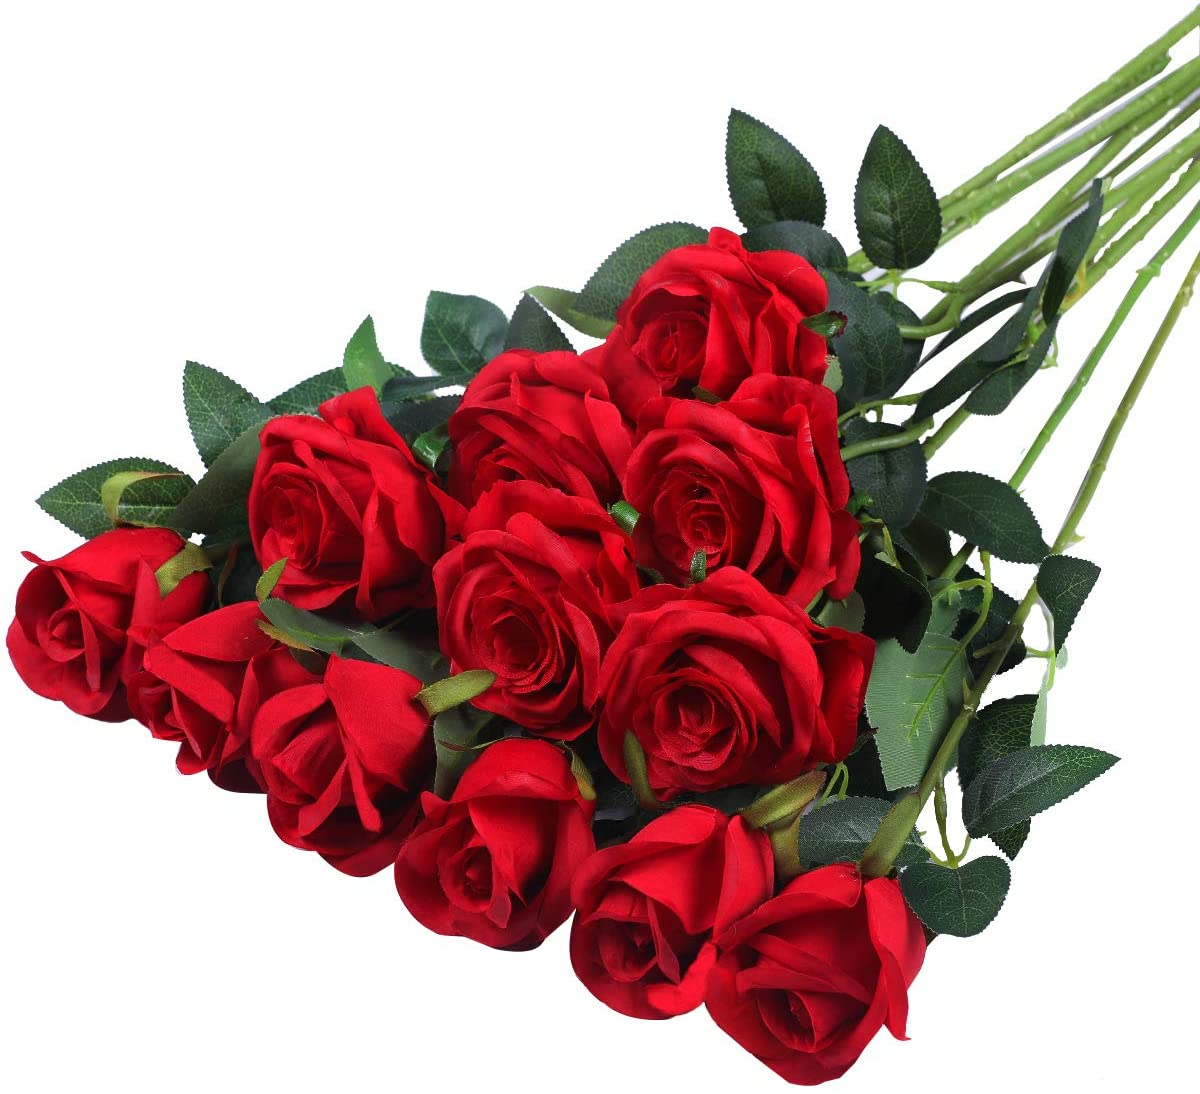 Hawesome 12PCS Artificial Silk Flowers Realistic Roses Bouquet Long Stem for Home Wedding Decoration Party (Red)